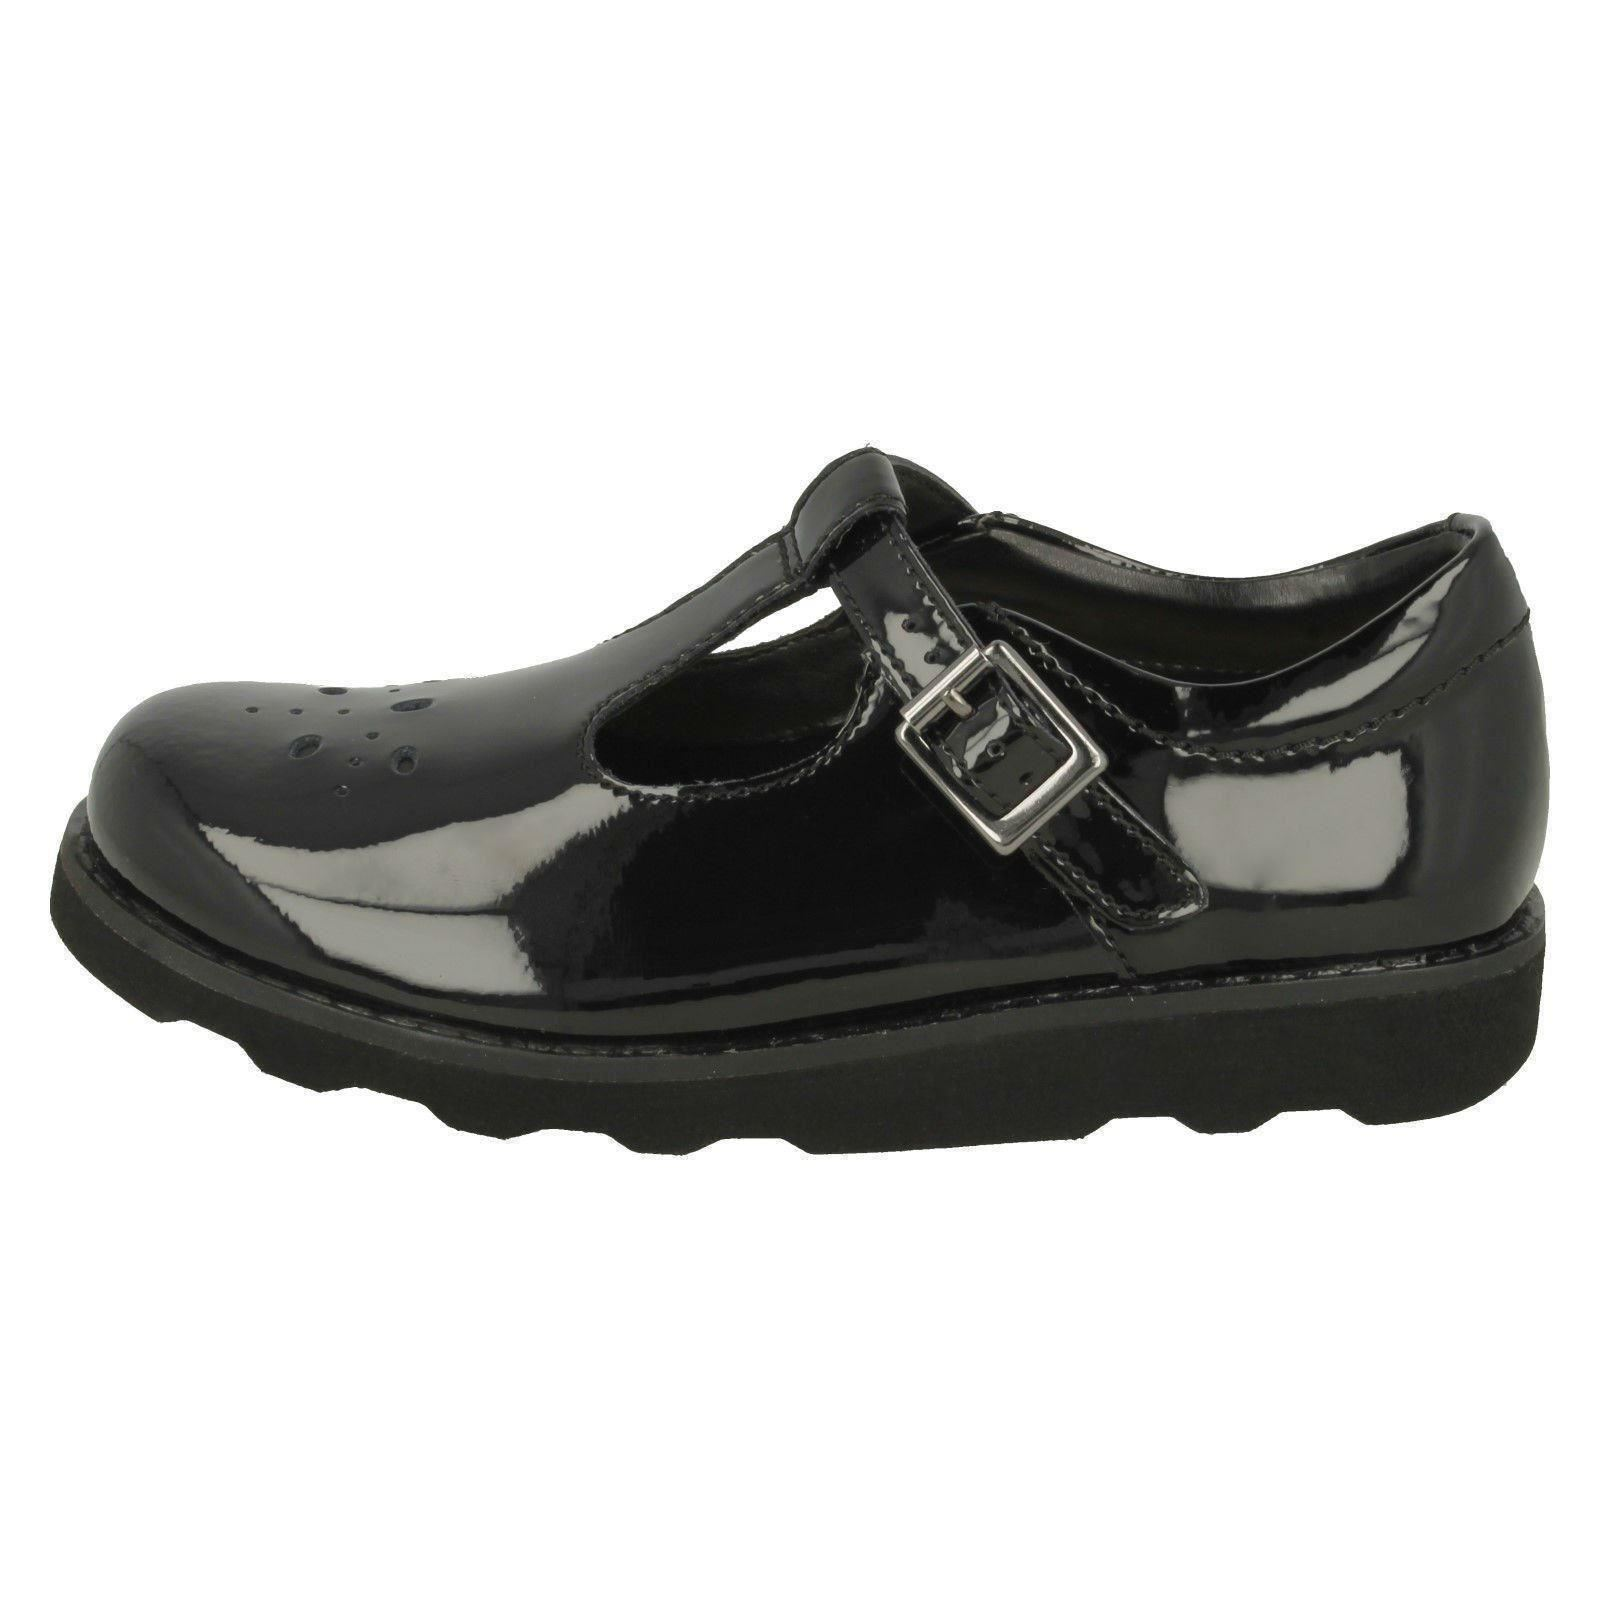 Wish Negro T Clarks Zapatos Crown bar para niñas AqPYHx